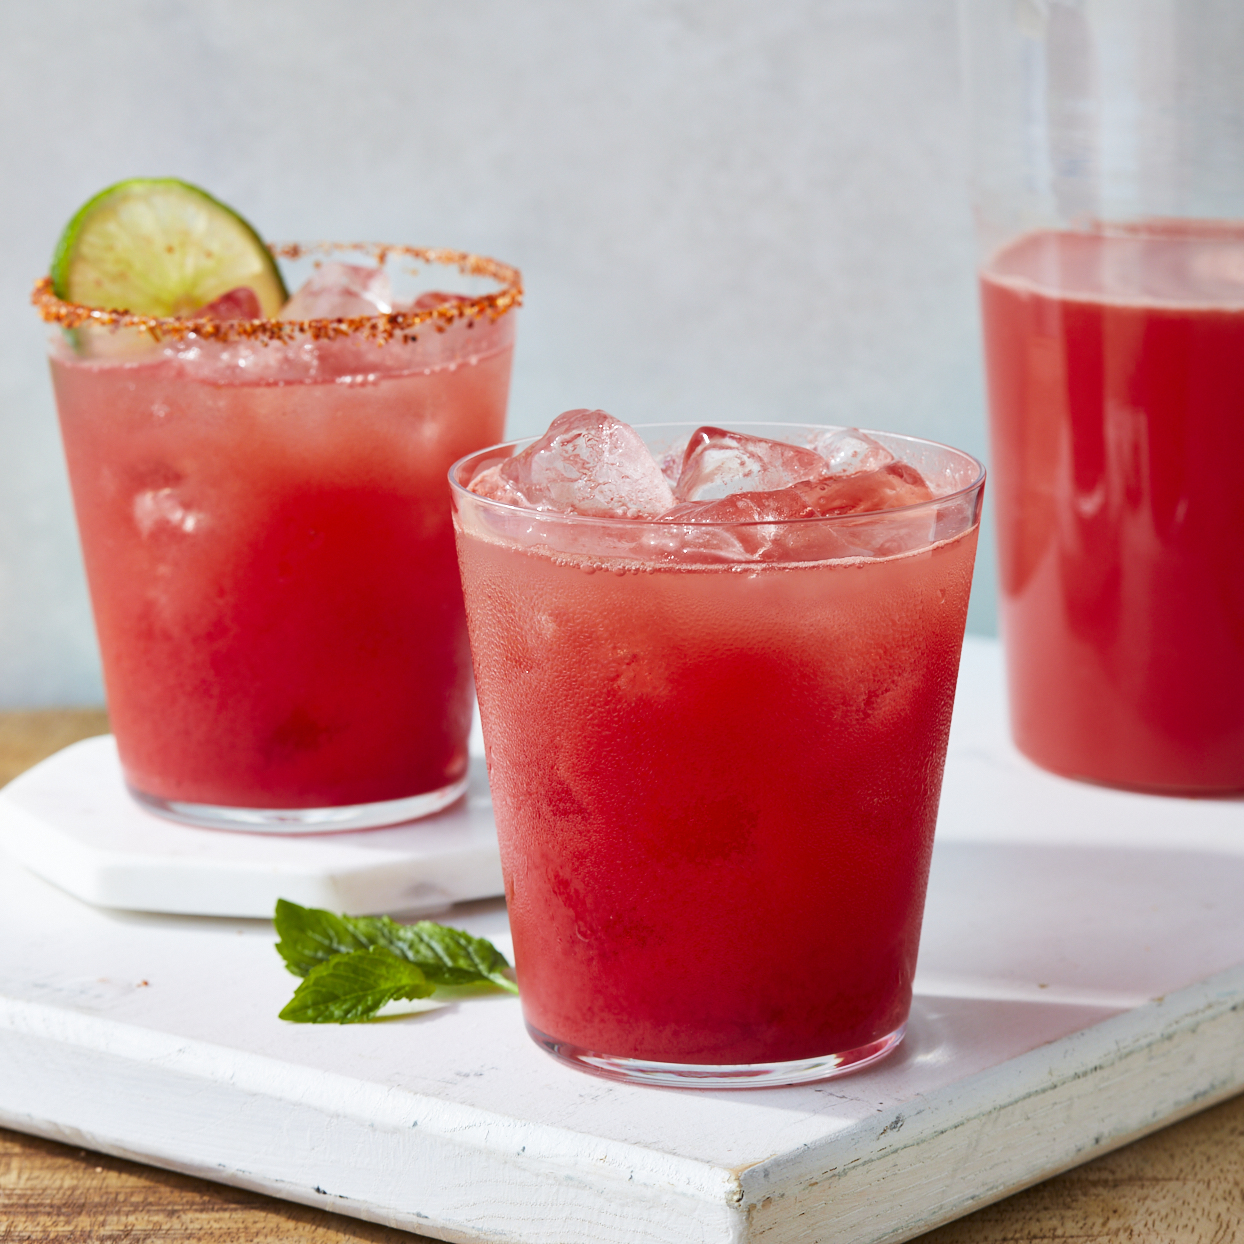 Watermelon Juice Trusted Brands